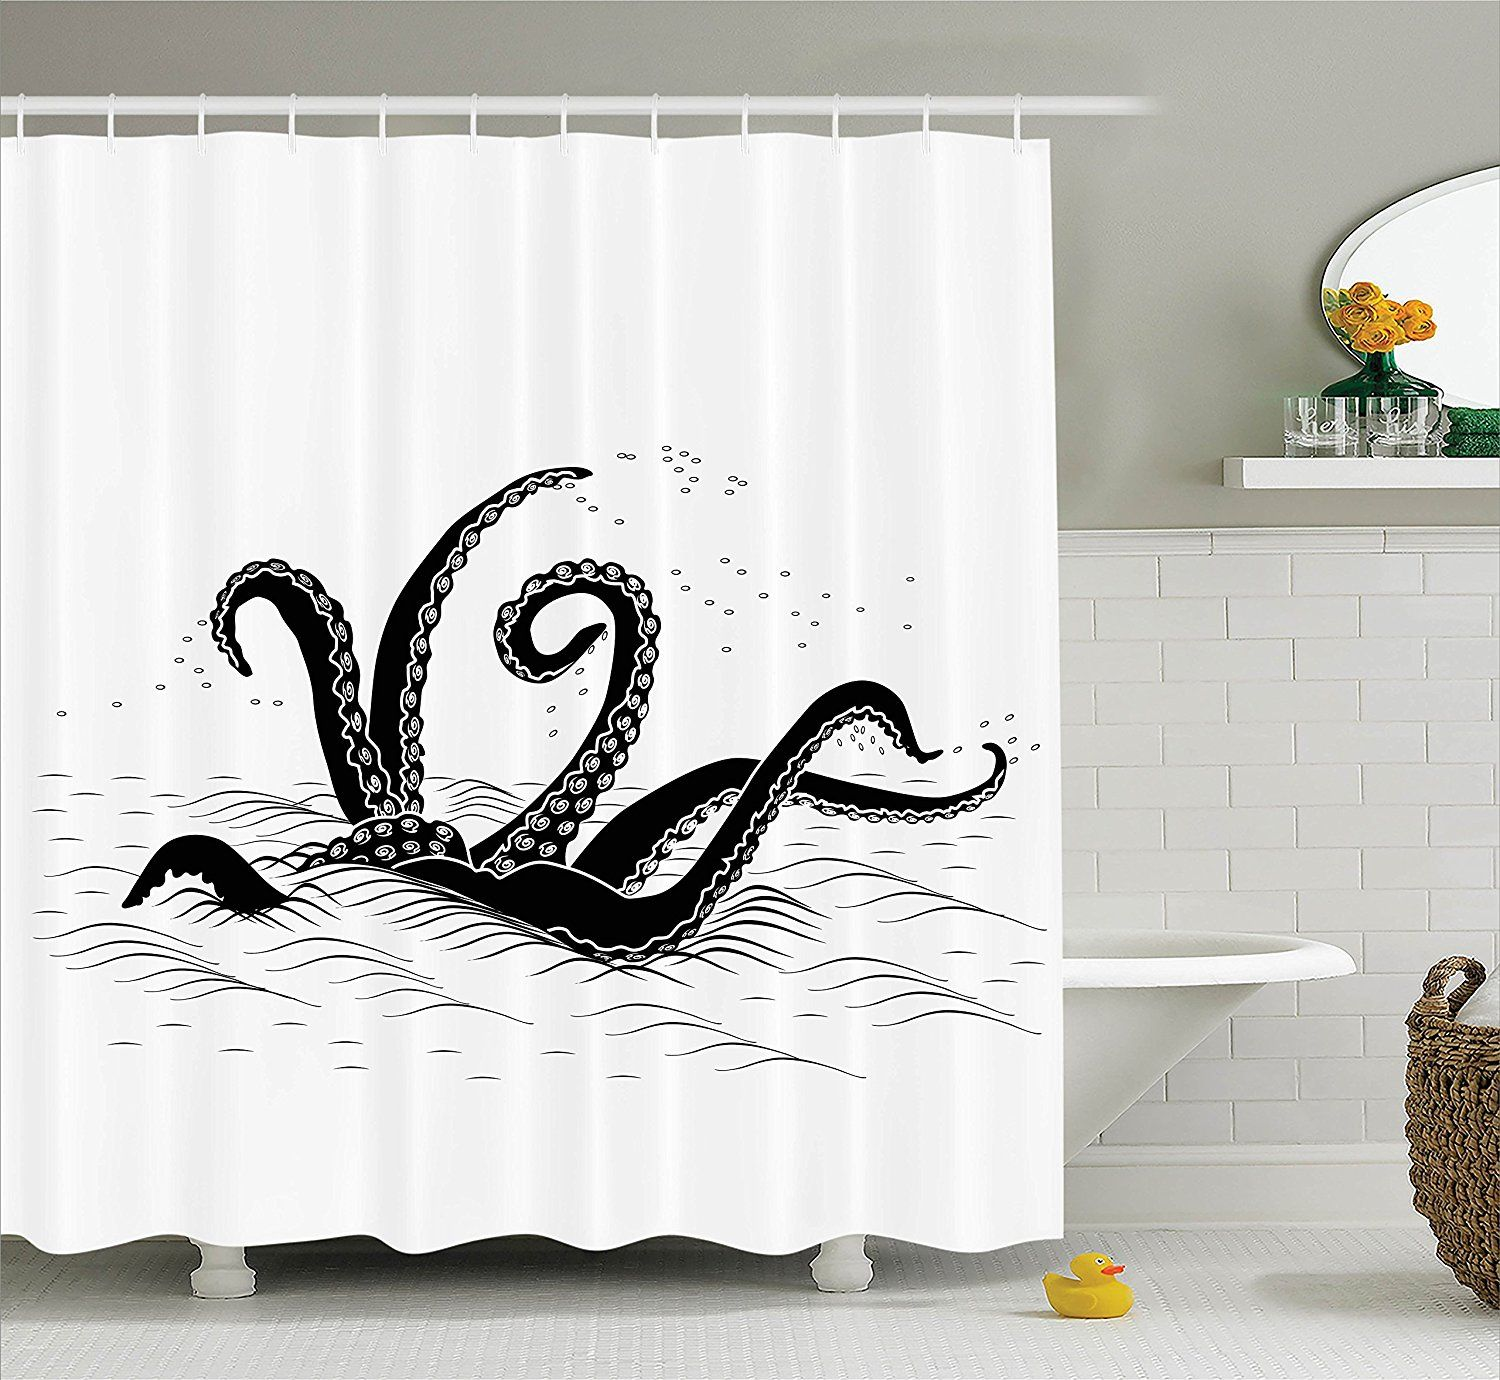 Fun Shower Curtain unique octopus kraken shower curtains - tentacles coming out of